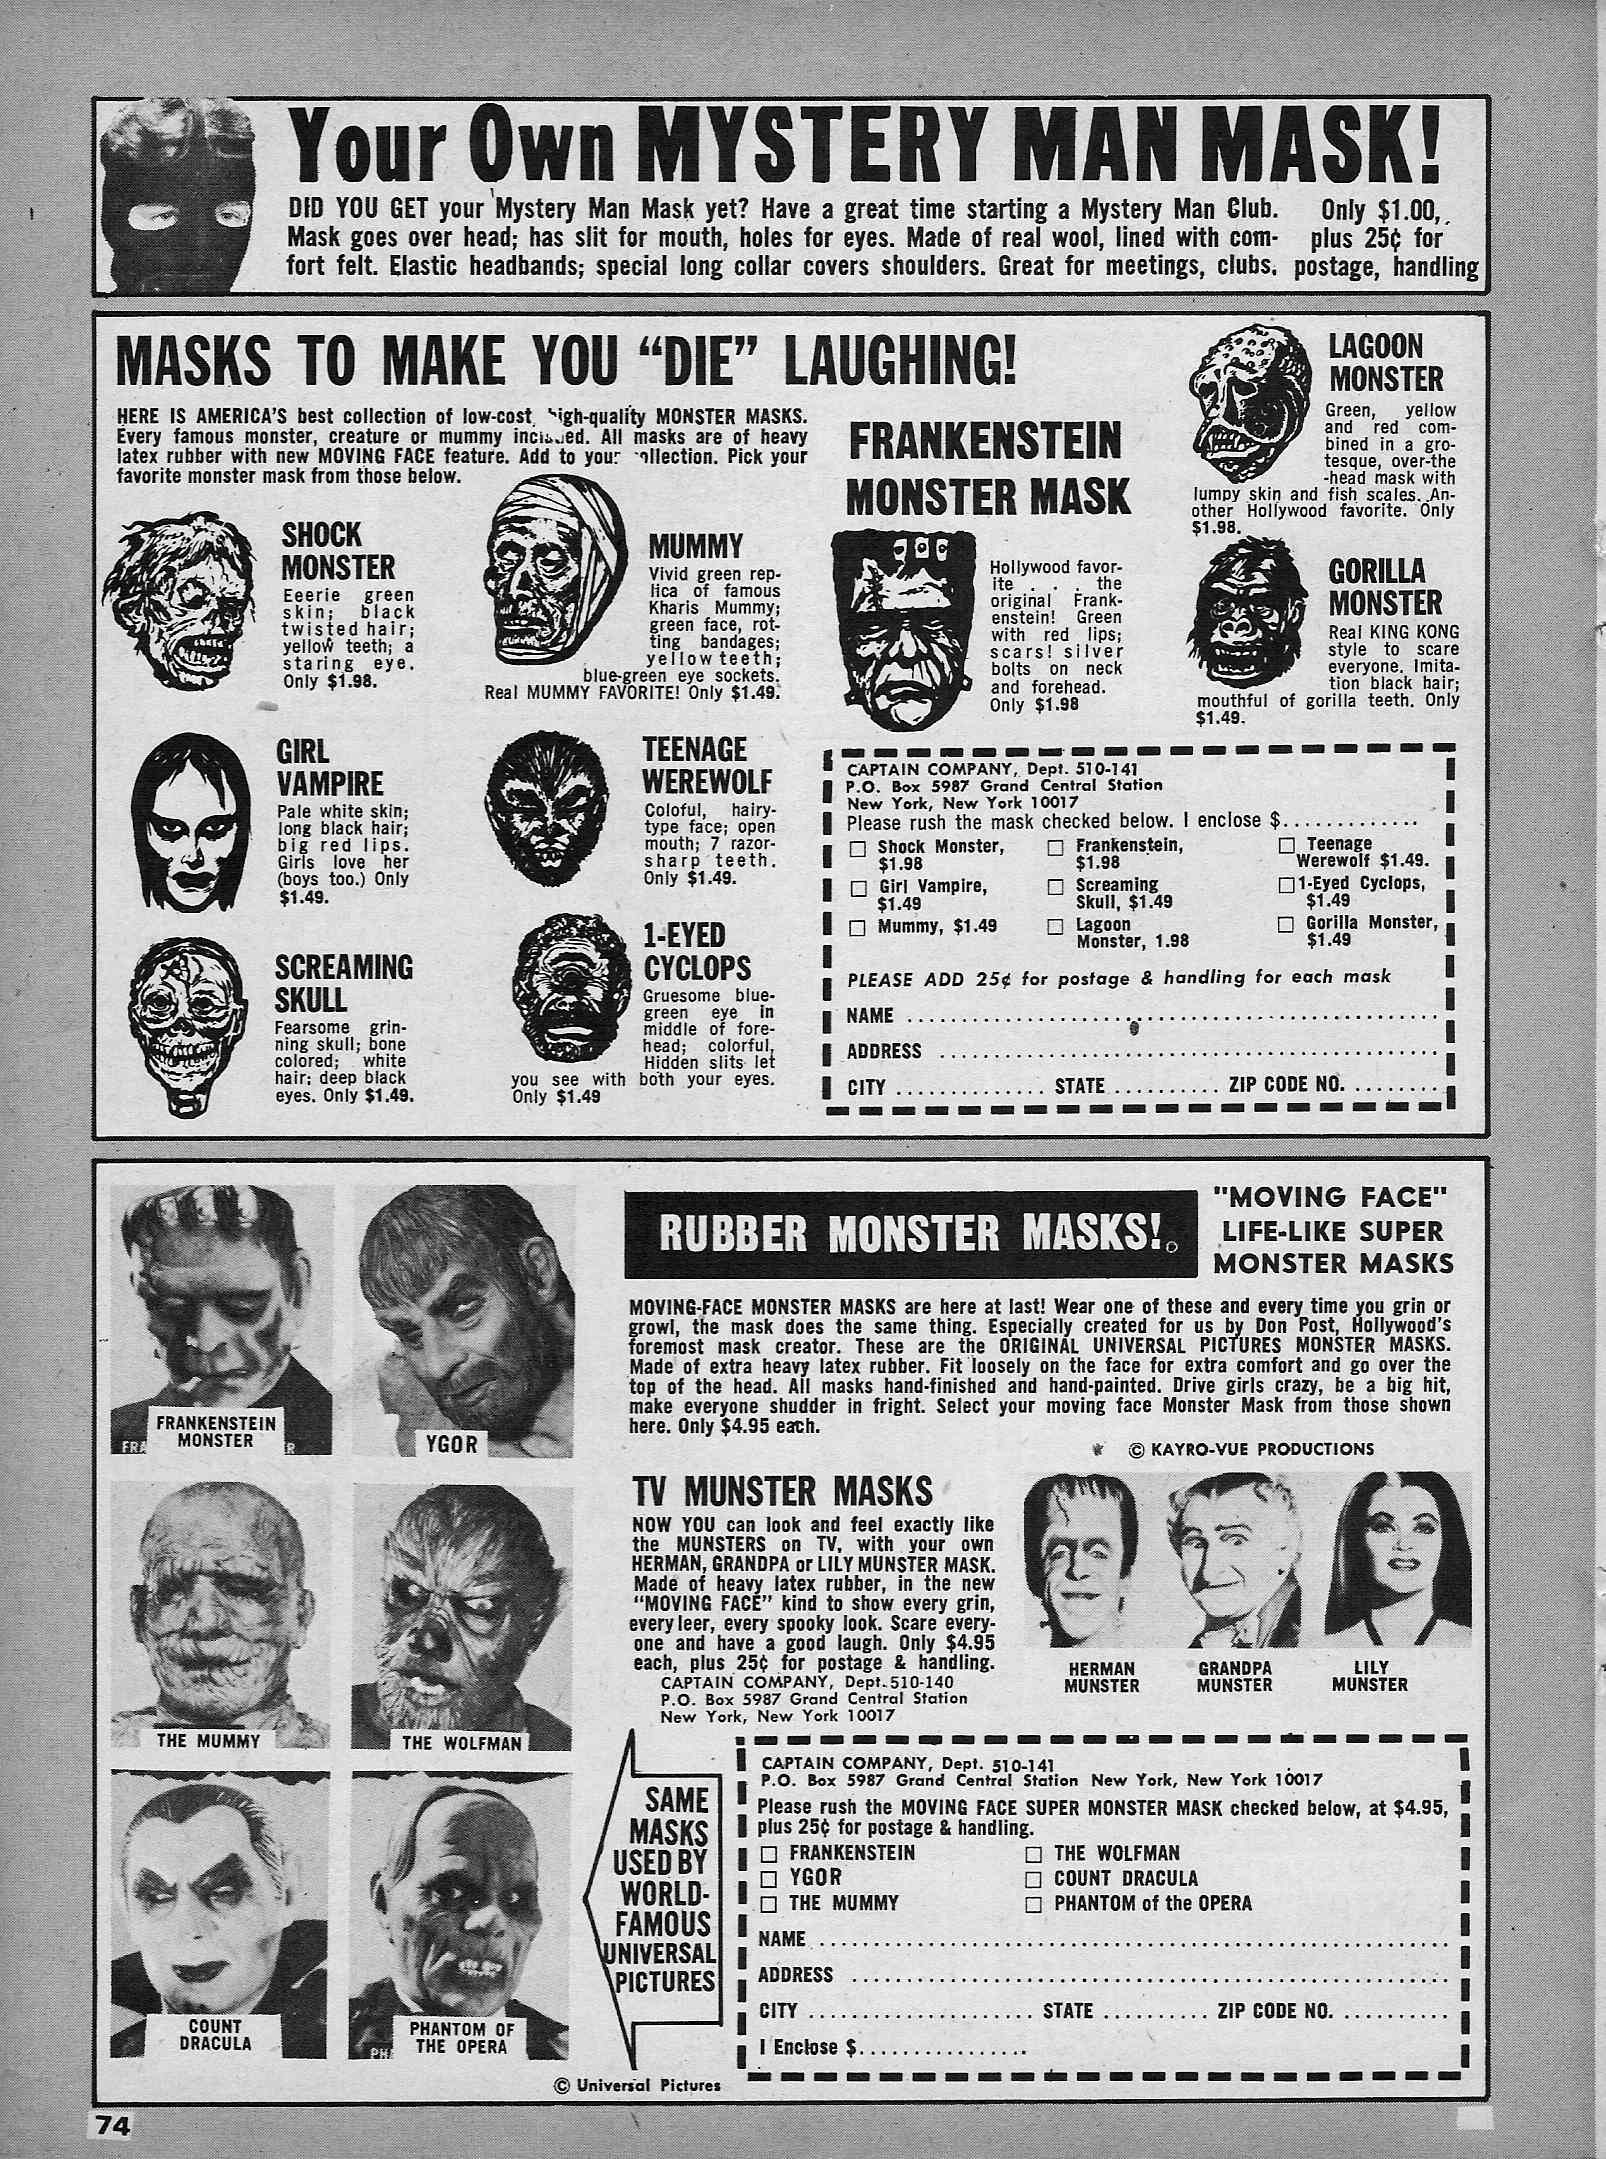 Halloween Mask M-ad-ness! | Branded in the 80s